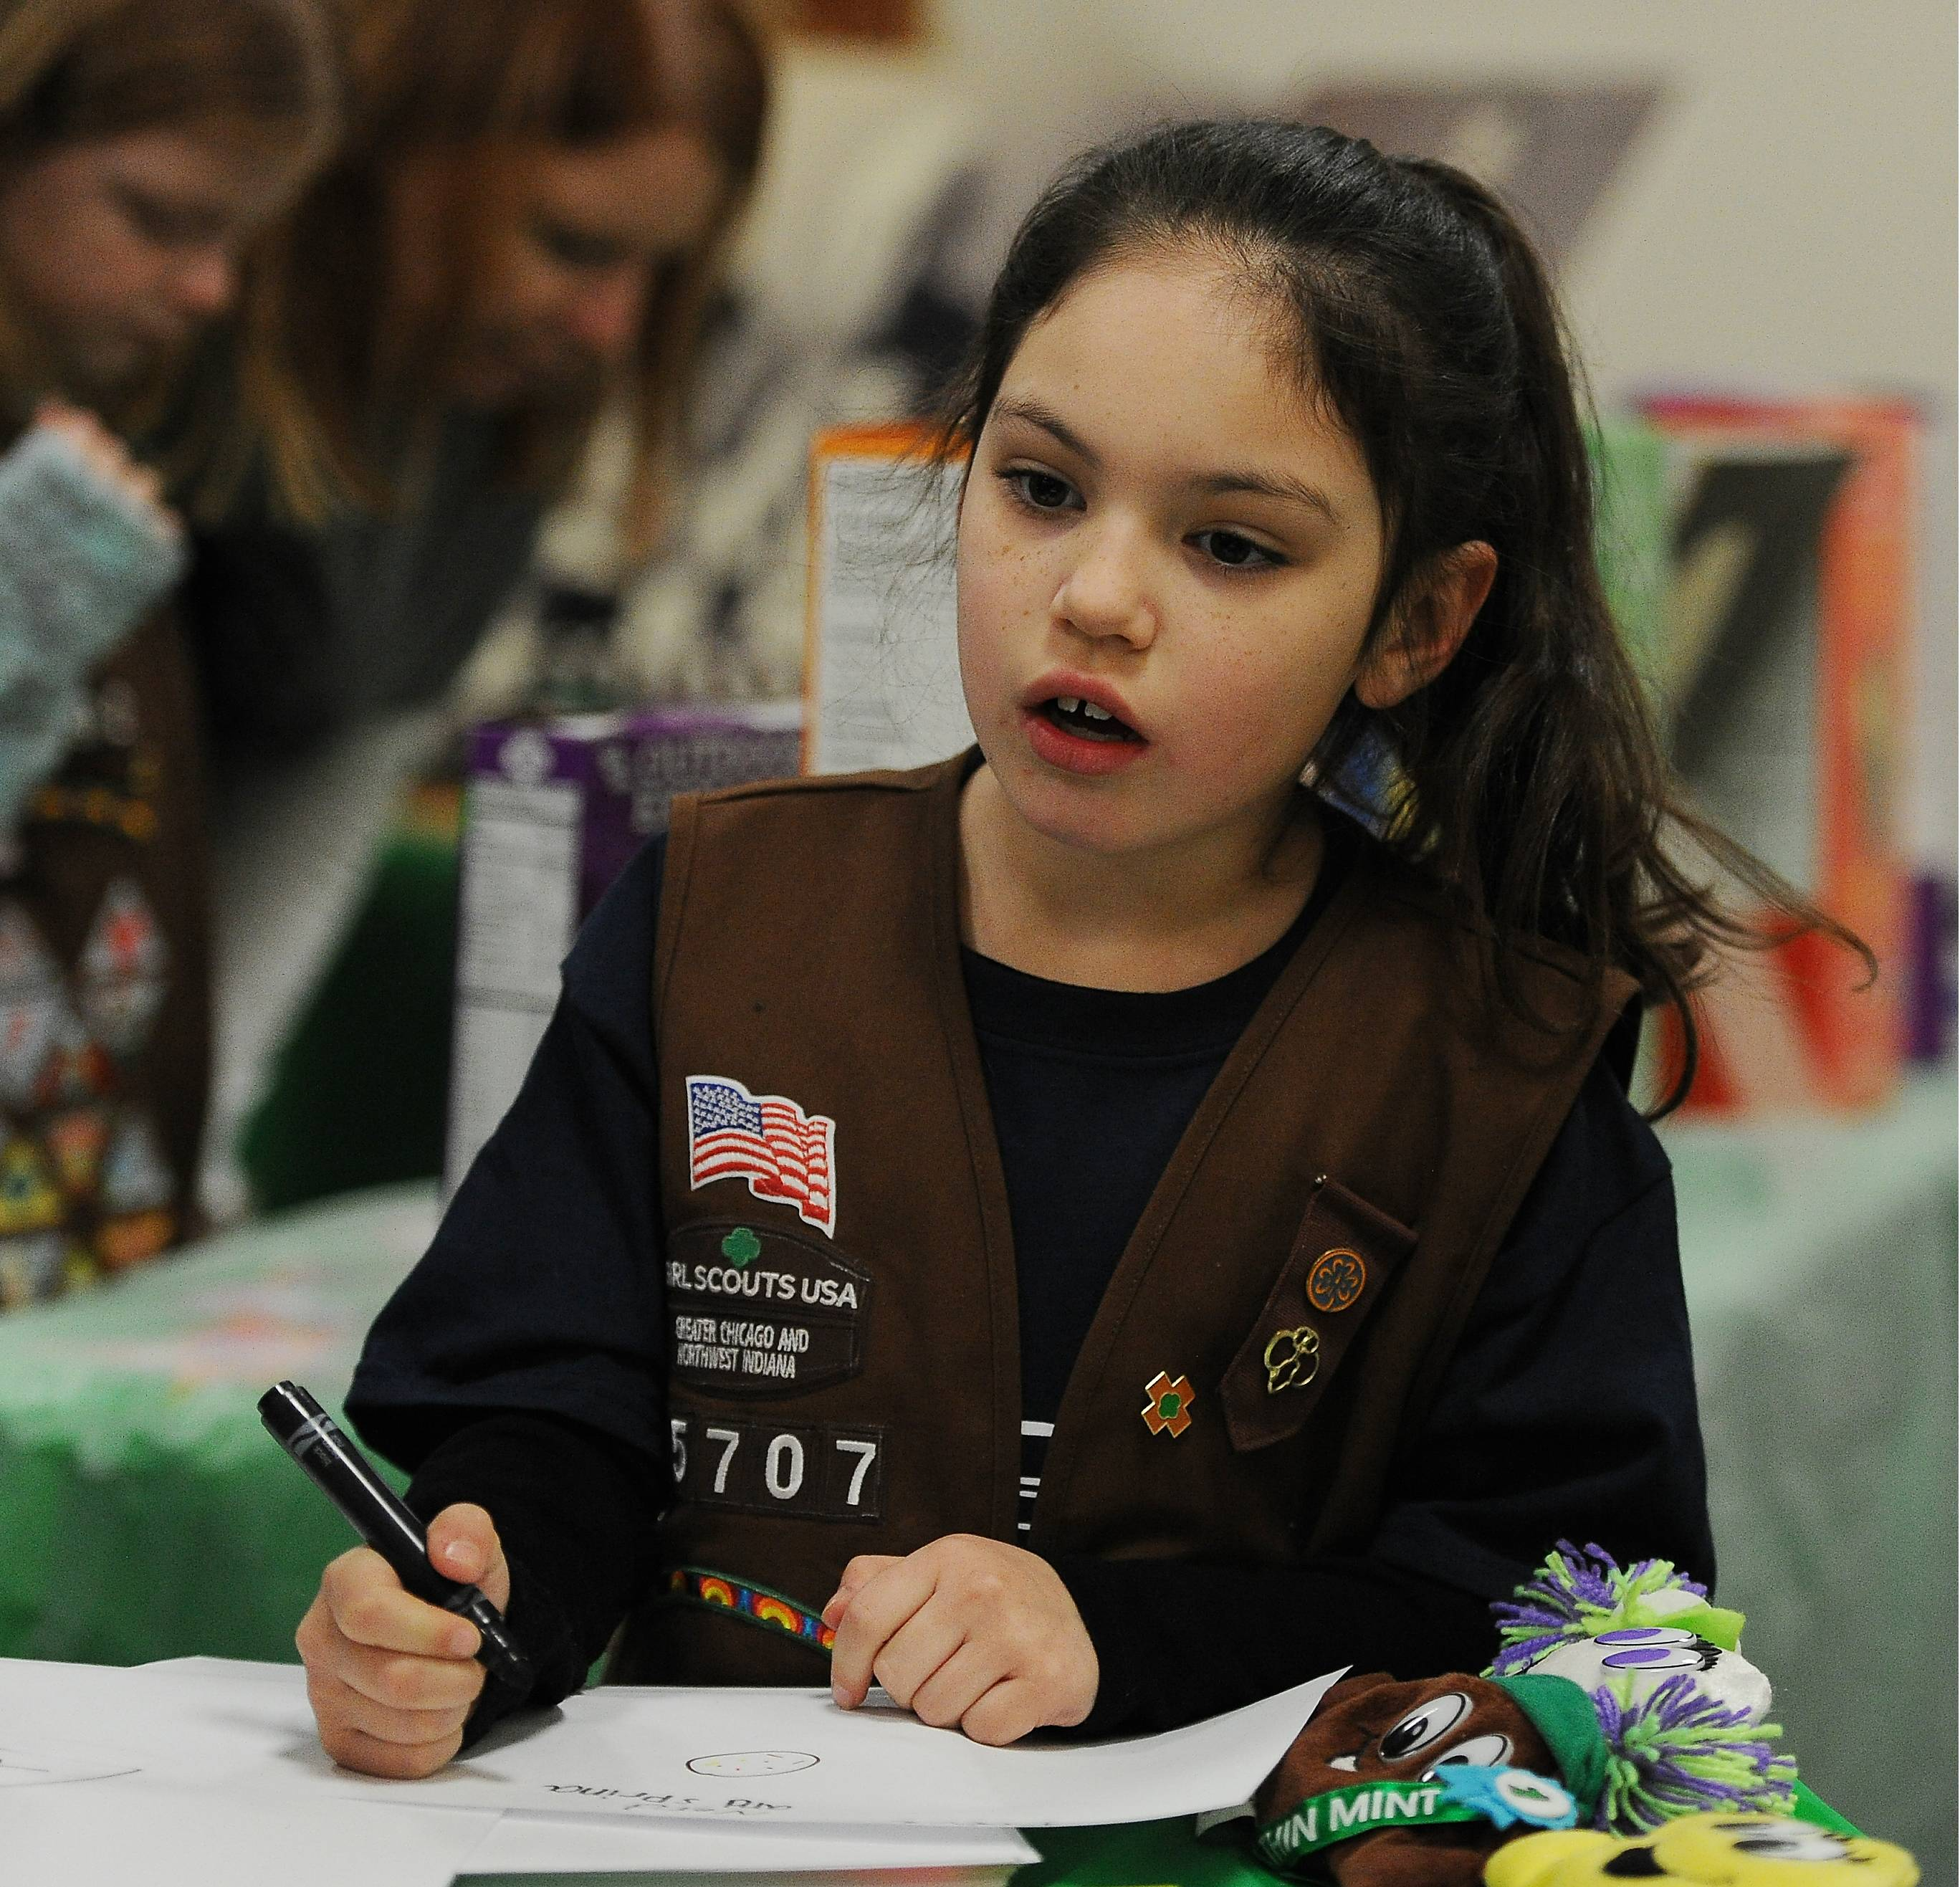 Isabel Enciso, 7, of Round Lake's Brownie Troop 45707, thinks about the art design she just created, which depicts what the cookie of the future will look like according to her imagination as part of Girl Scouts annual cookie sale kickoff at the Allstate Arena on Saturday.